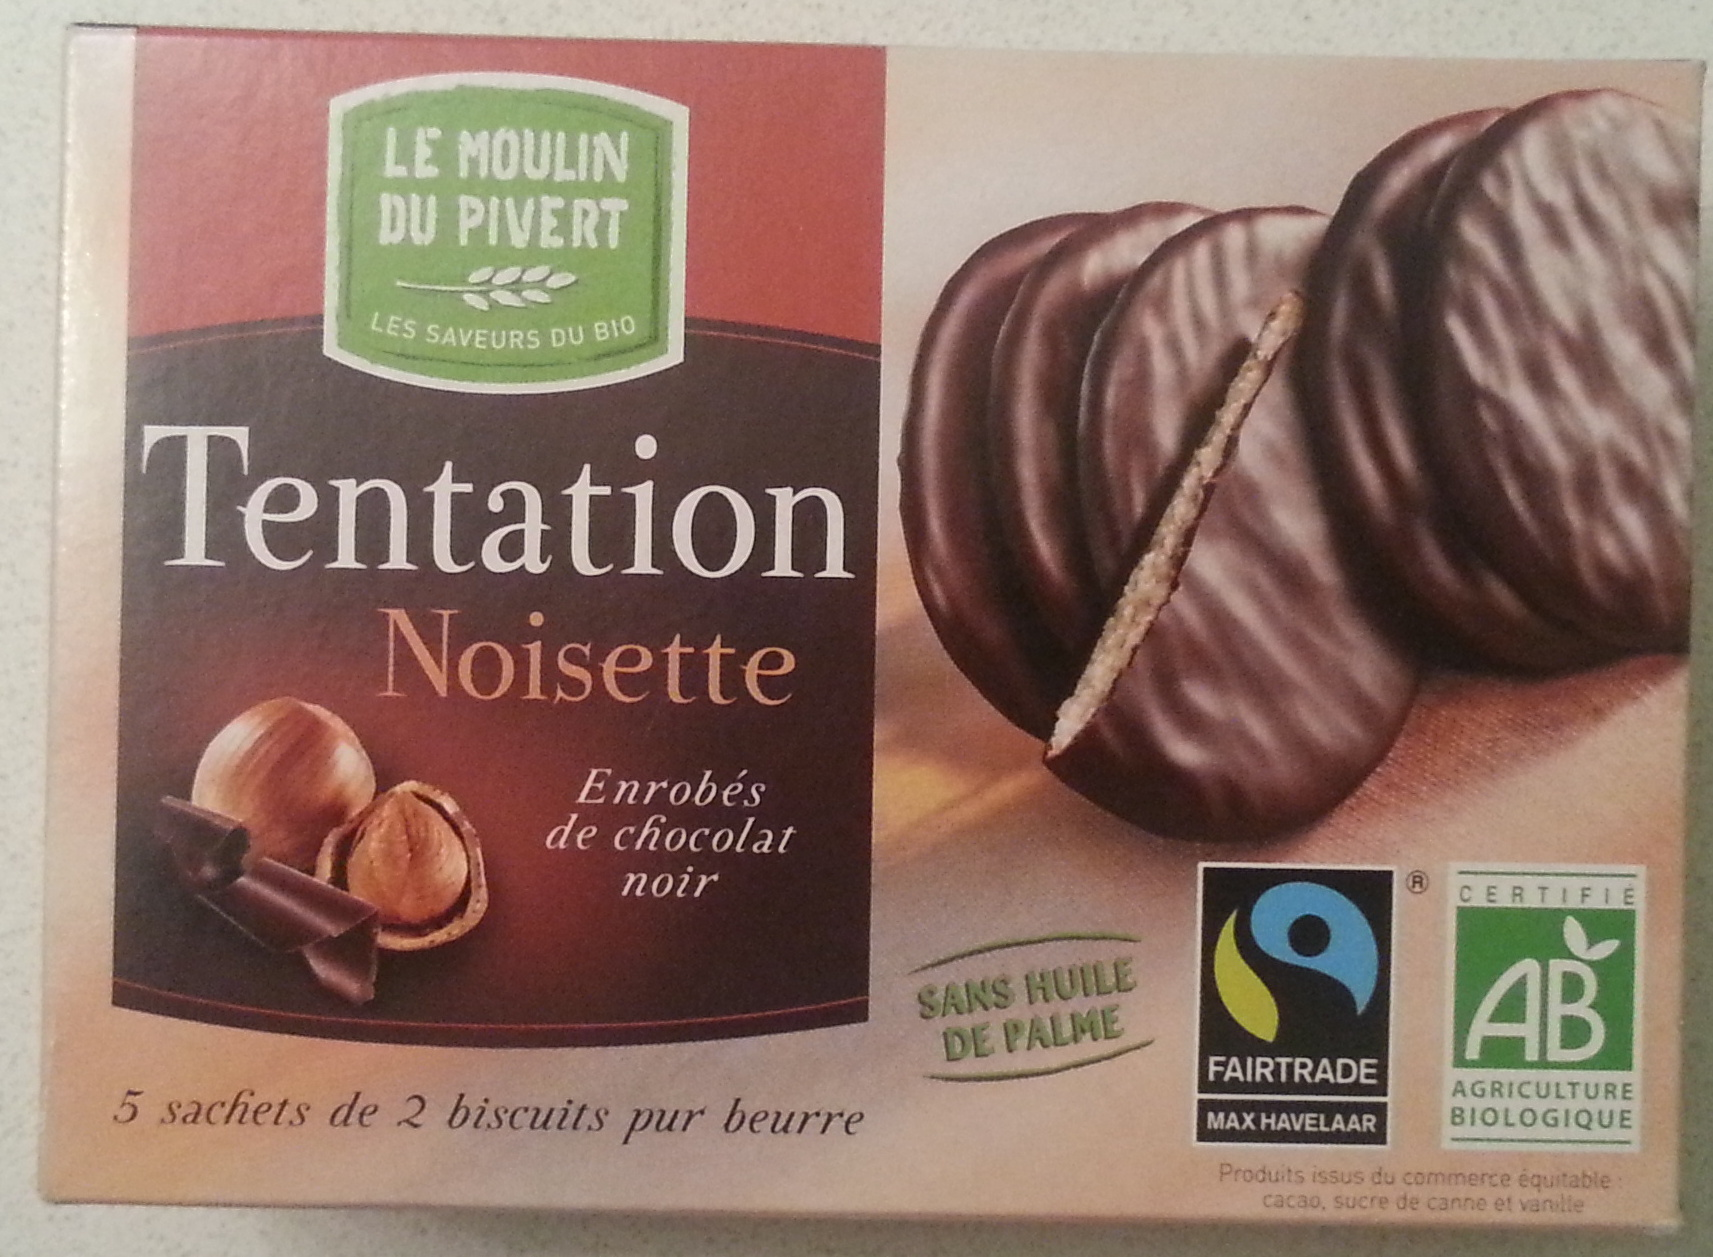 Tentation Noisette - Product